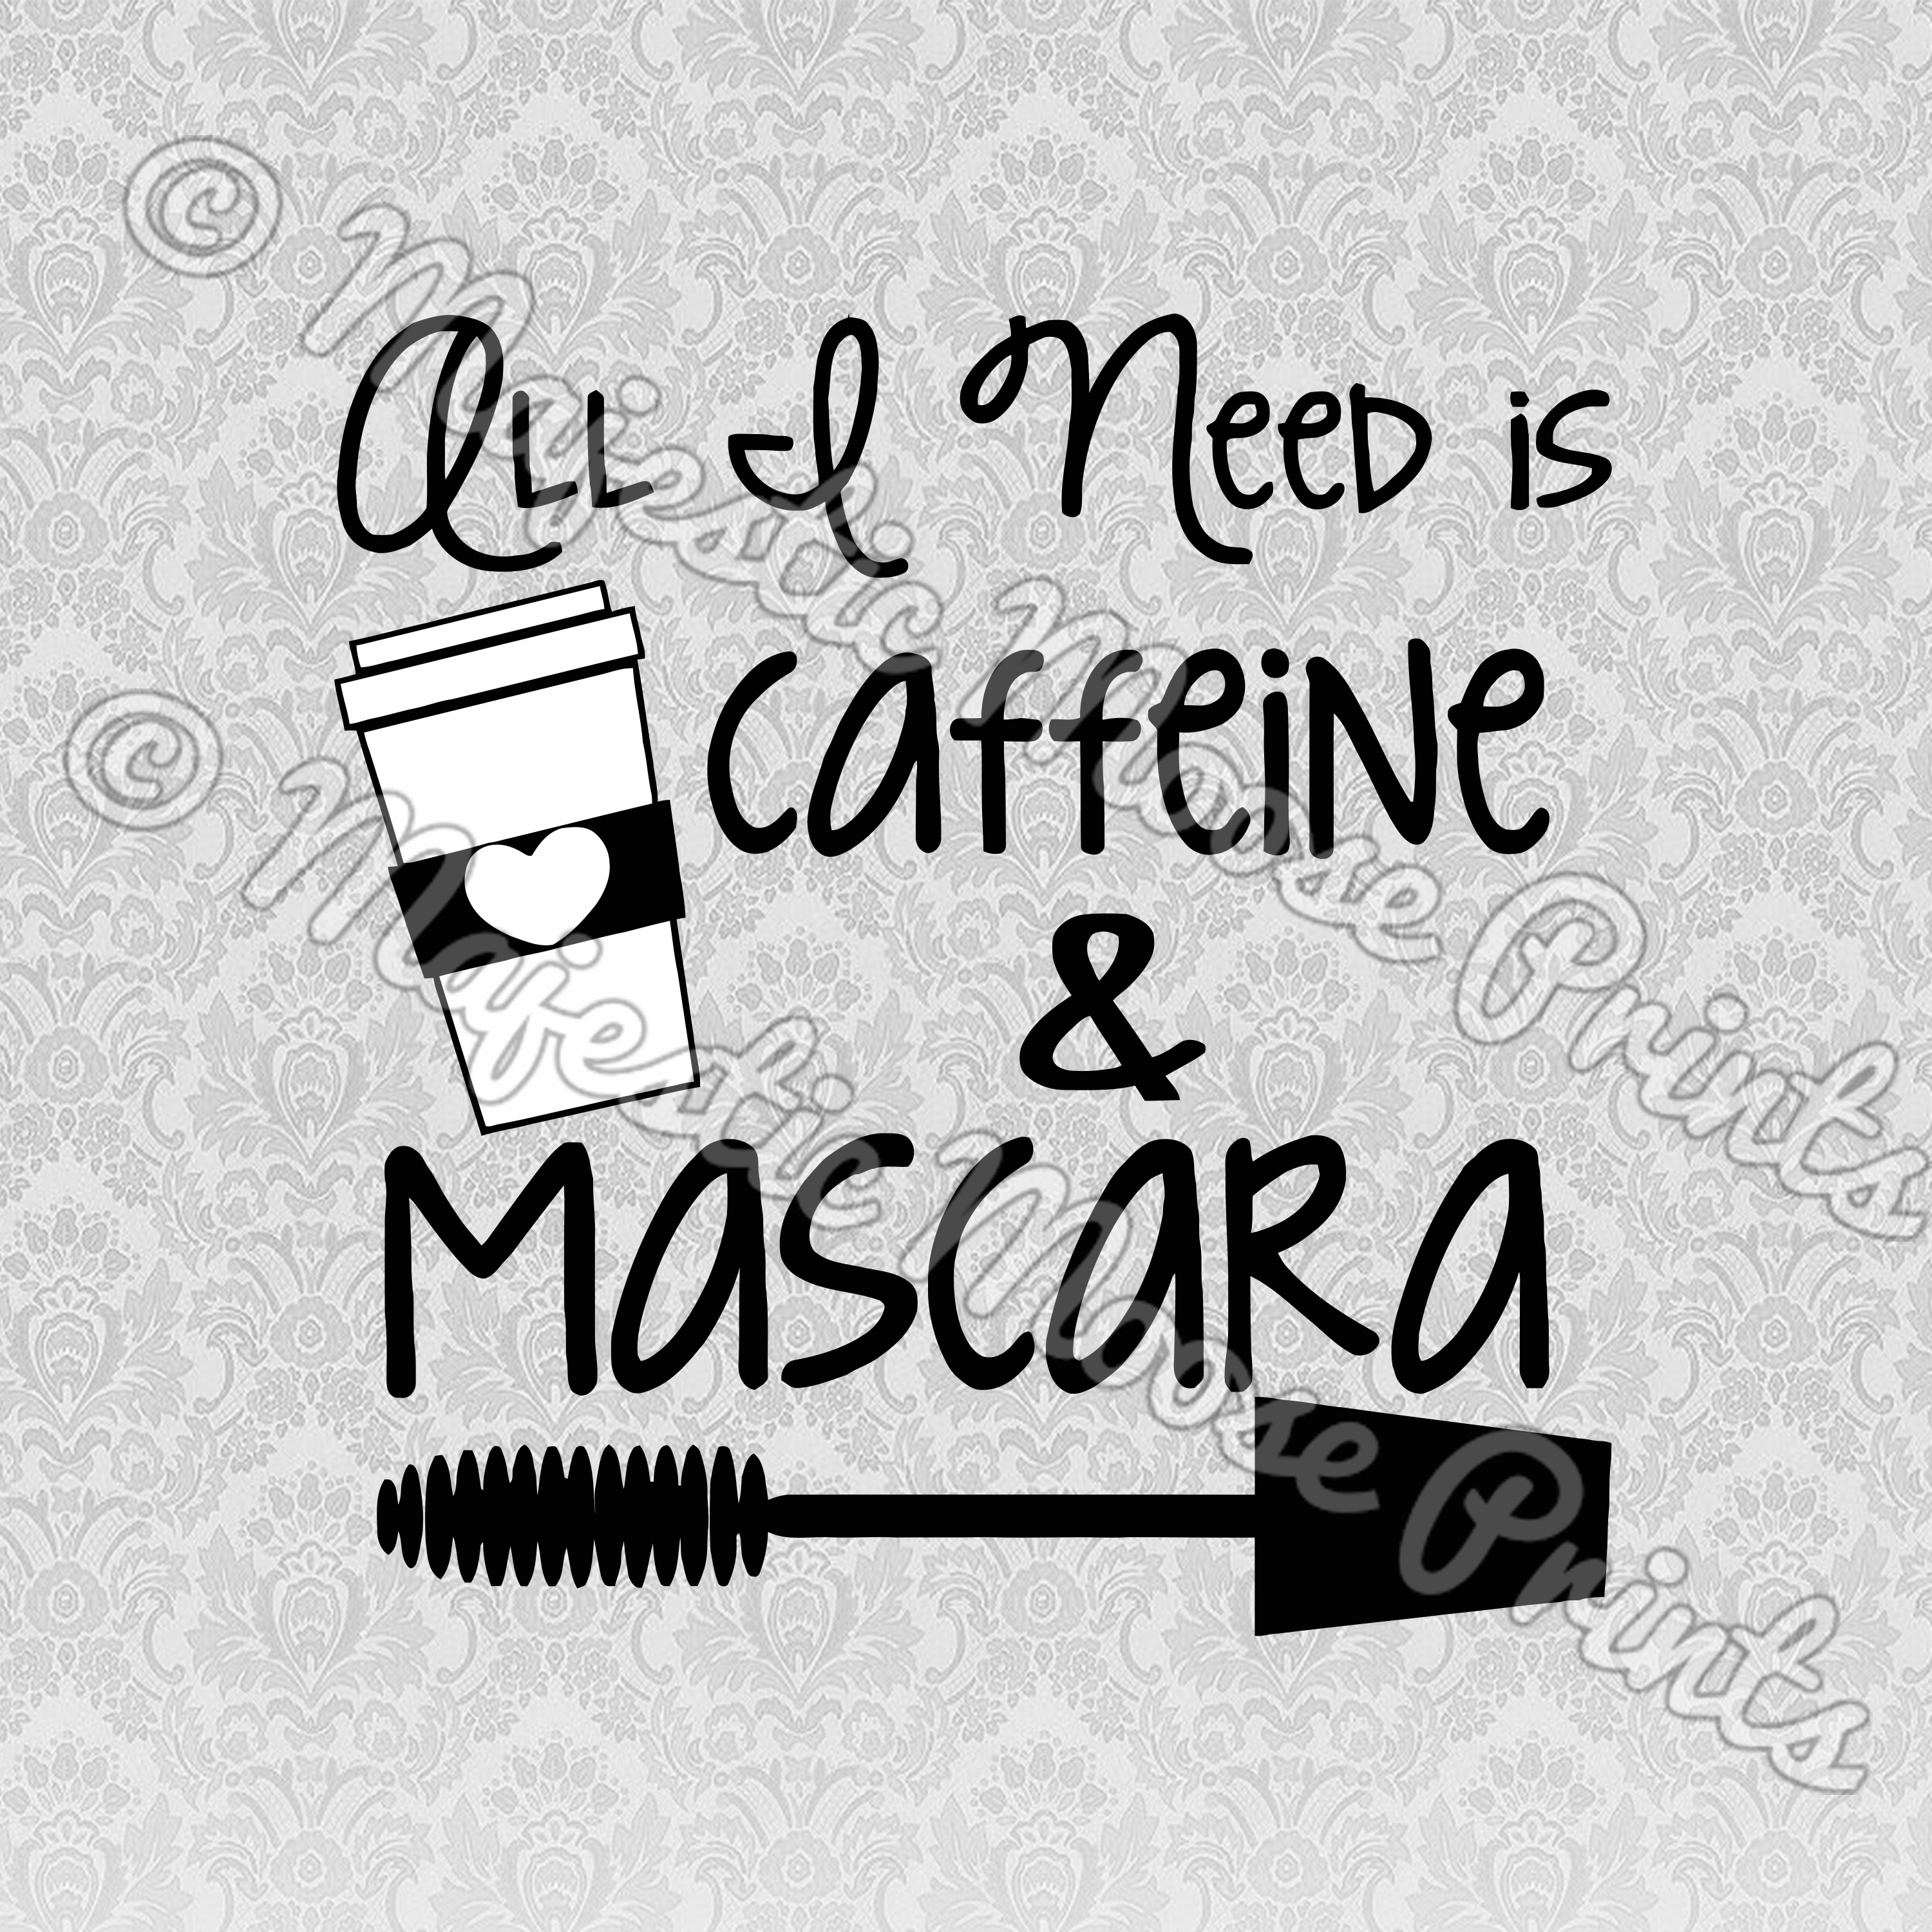 Mascara Quotes Majestic Moose Prints  All I Need Is Caffeine And Mascara Svg